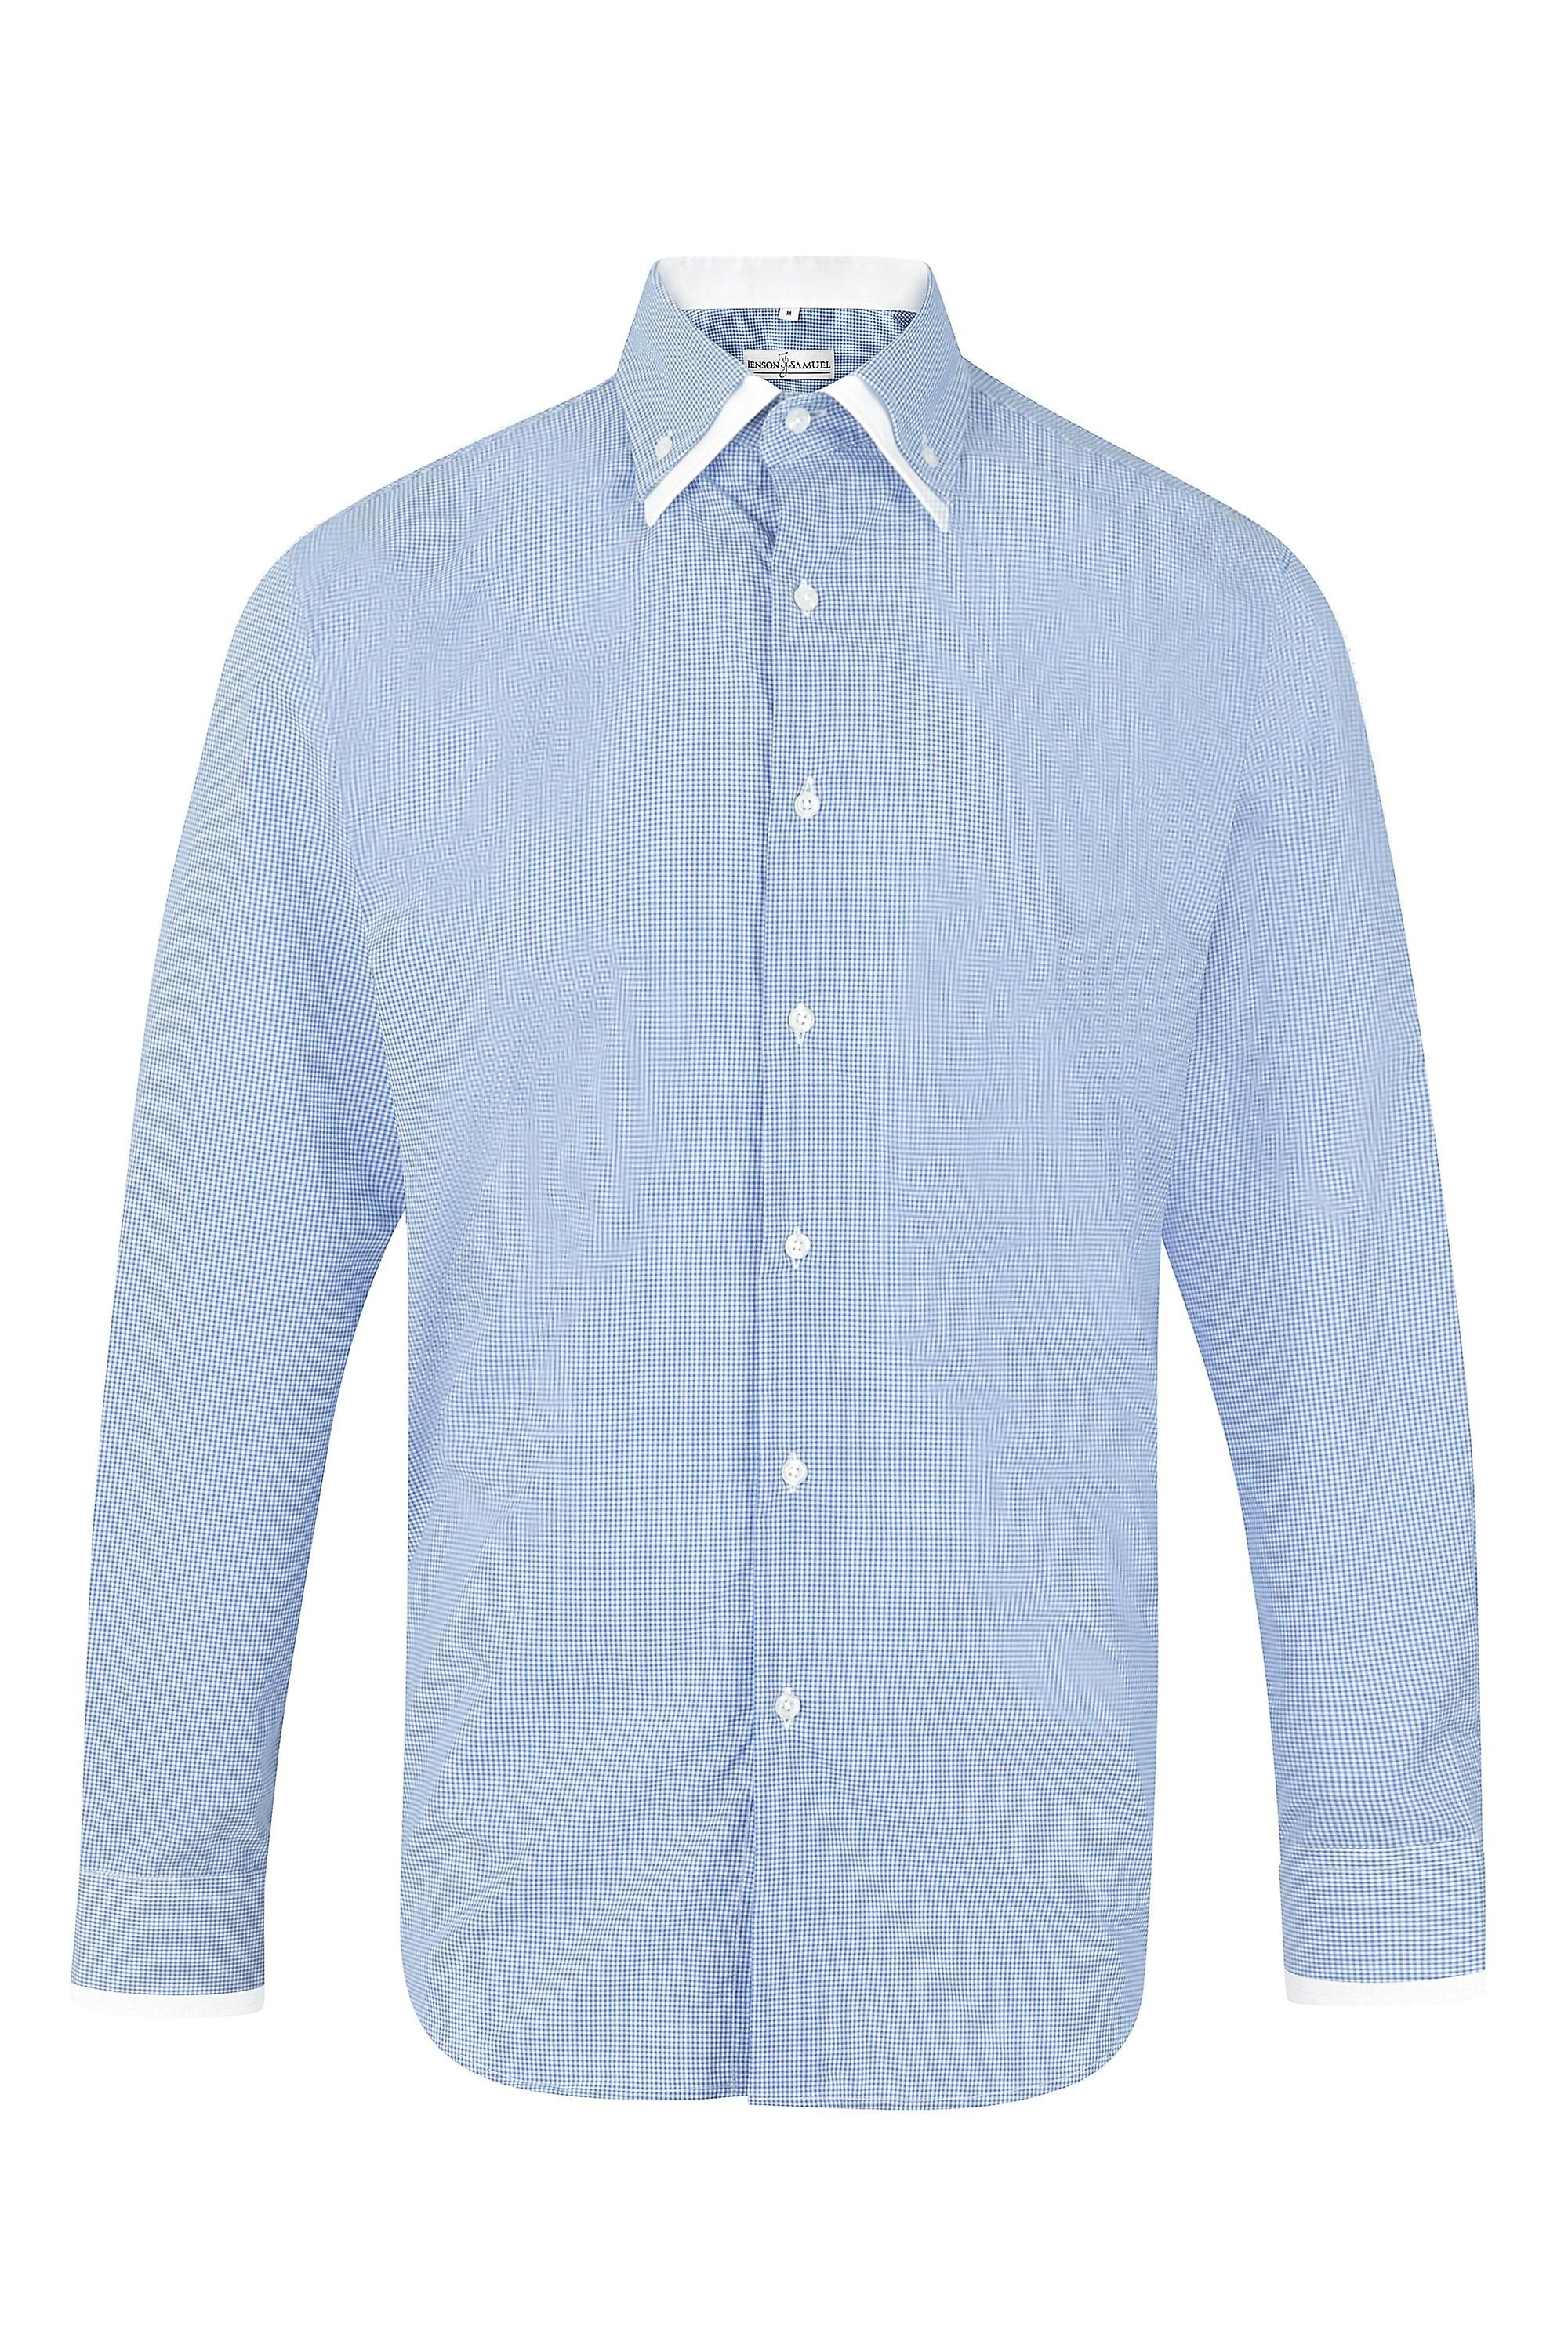 JSS Textured Dot Blue Regular Fit 100% Cotton Shirt With White Double Collar